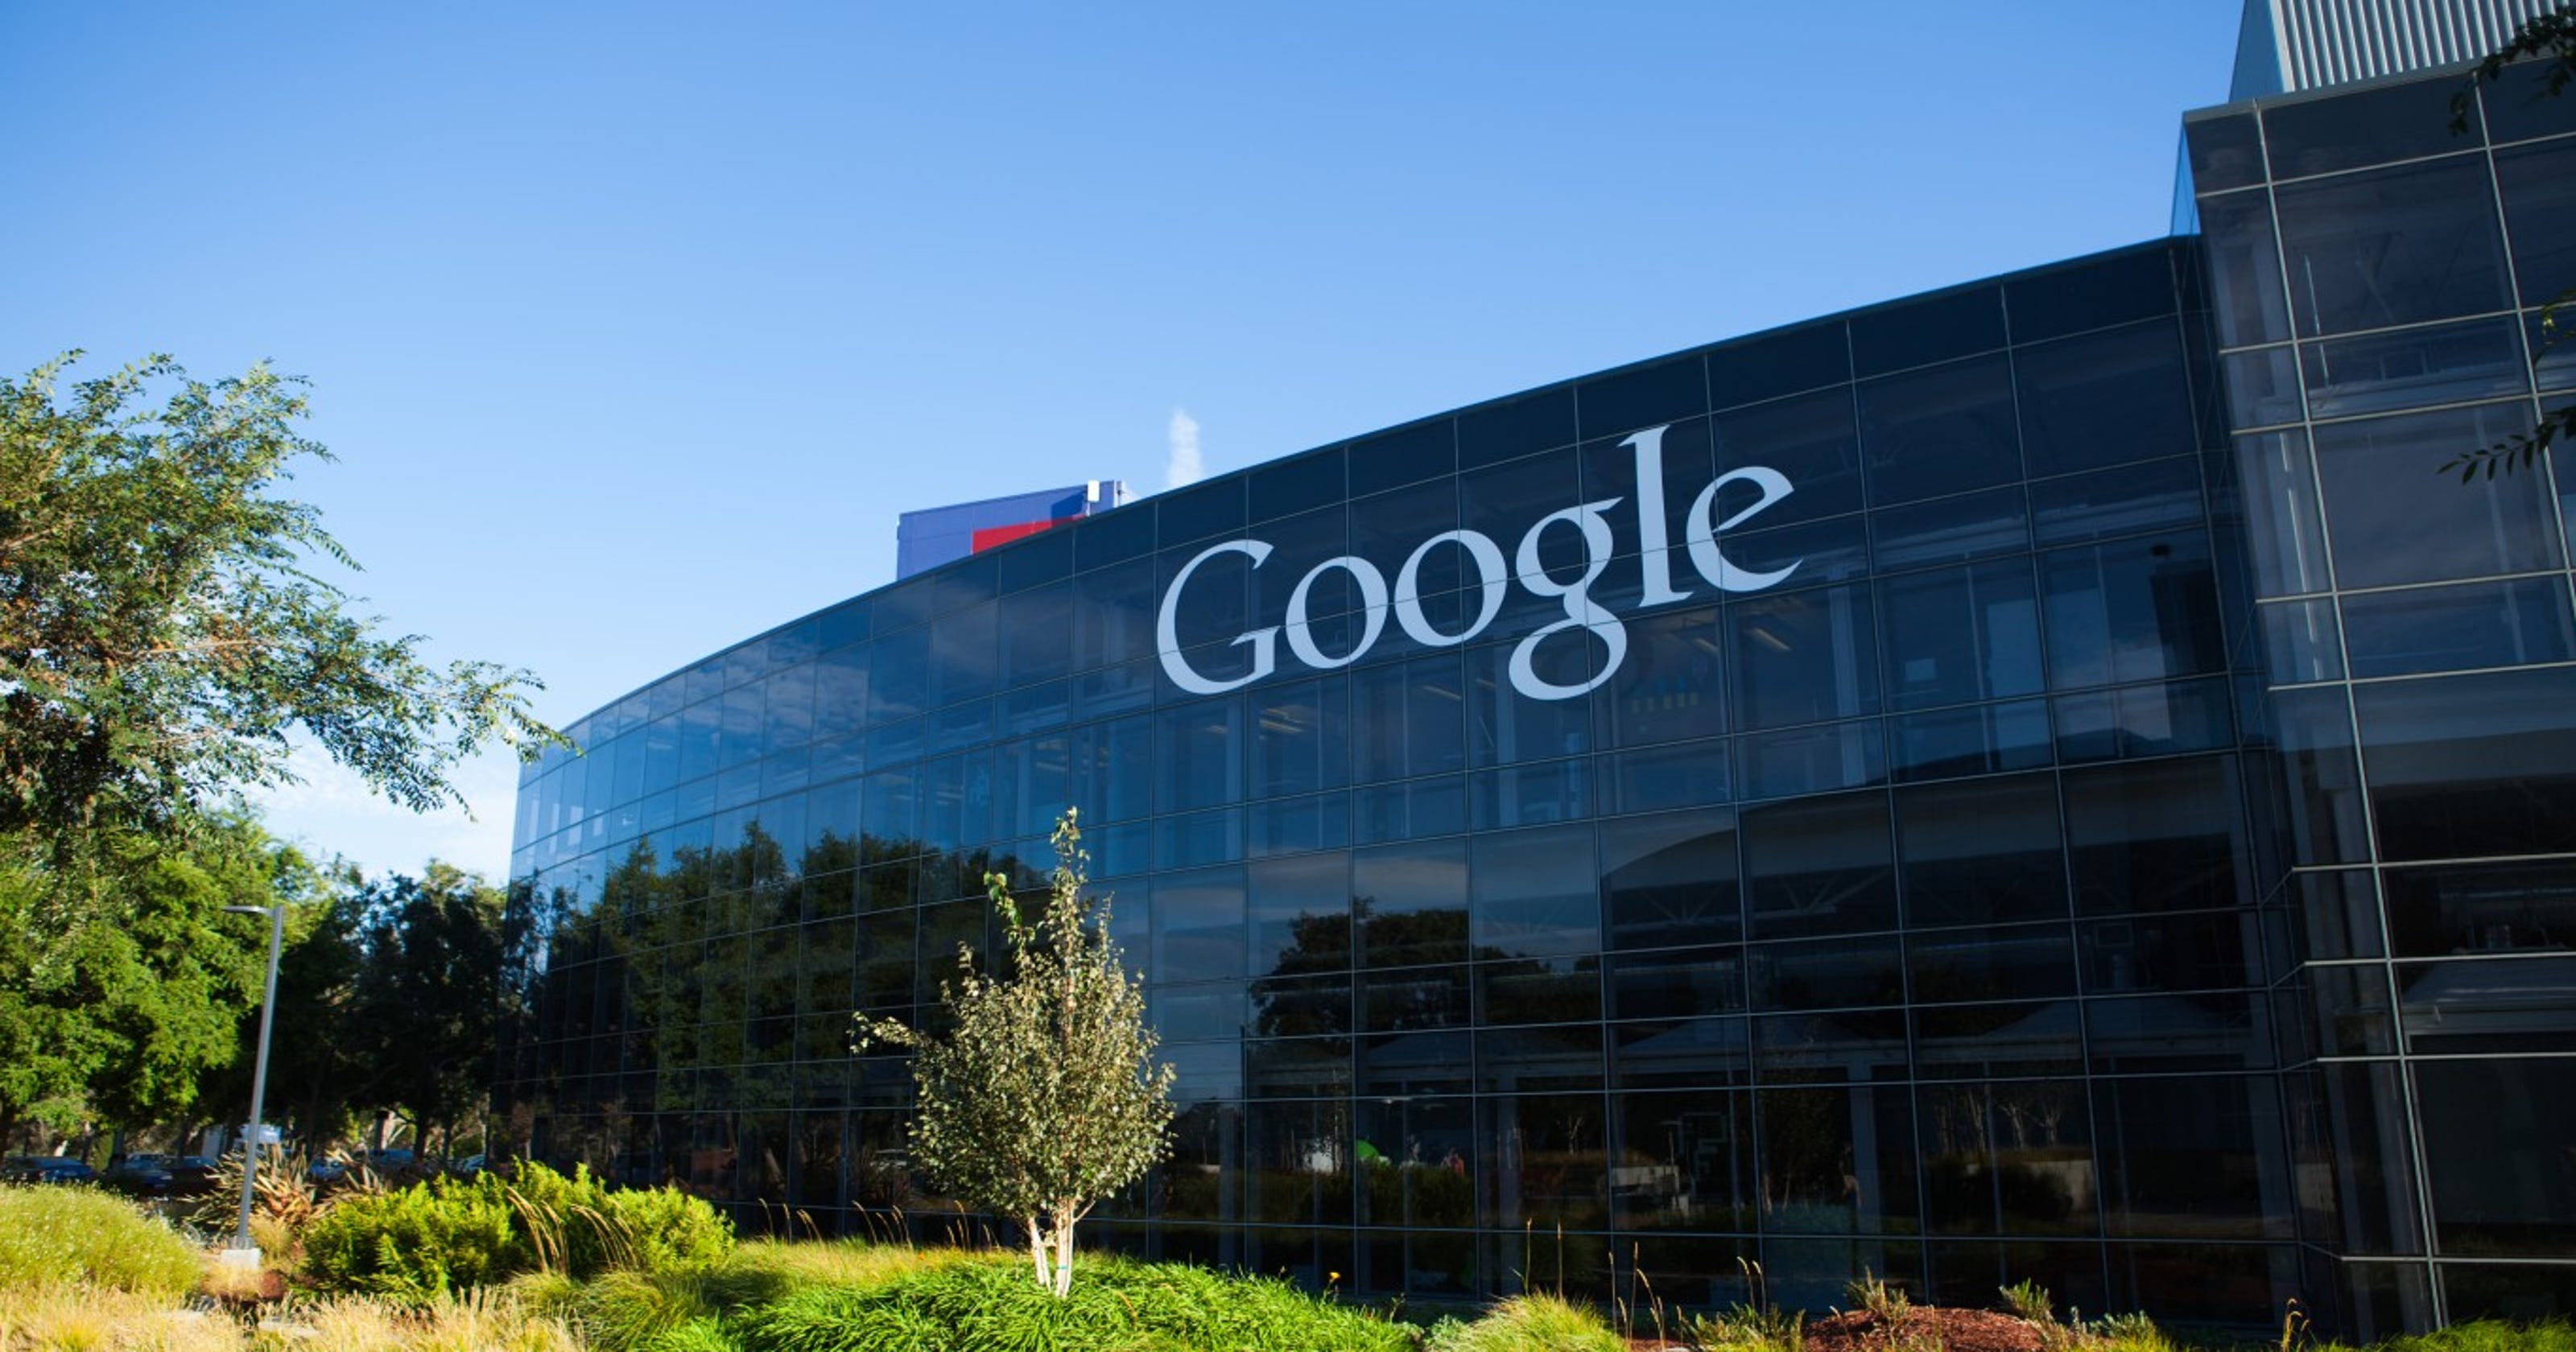 Google, Netflix, Costco ranked among top companies for diversity